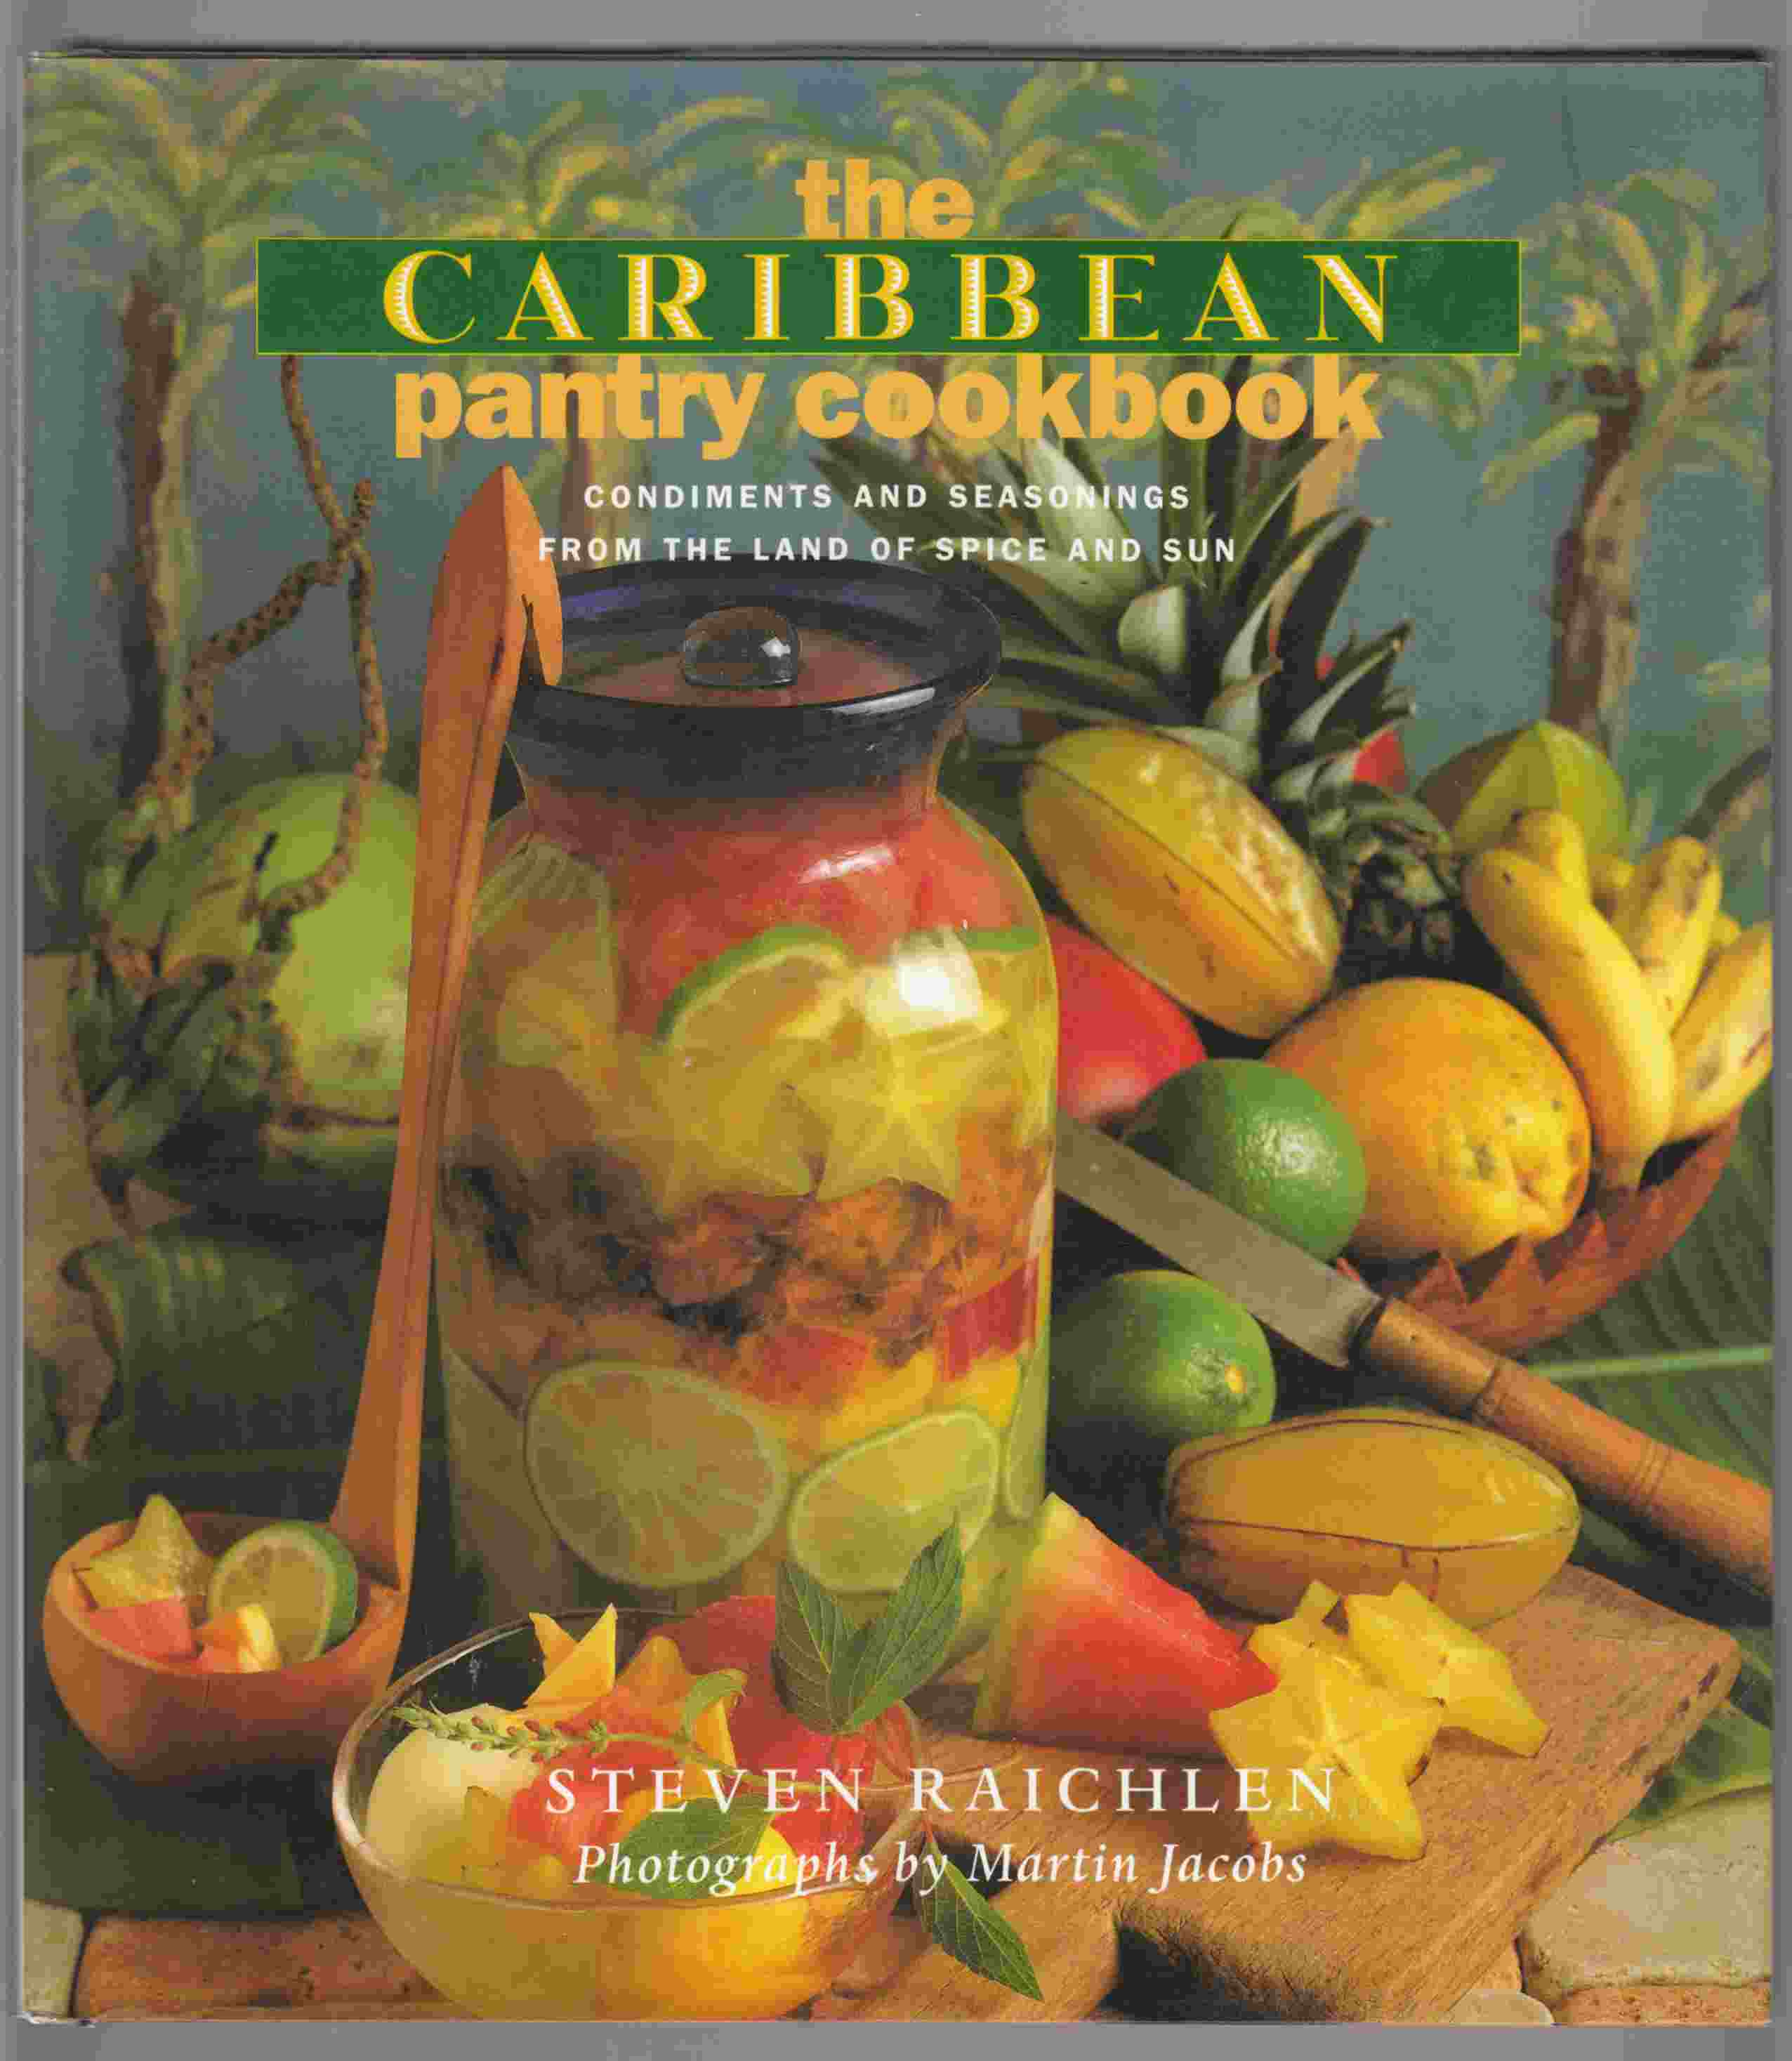 Image for The Caribbean Pantry Cookbook Condiments and Seasonings from the Land of Spice and Sun